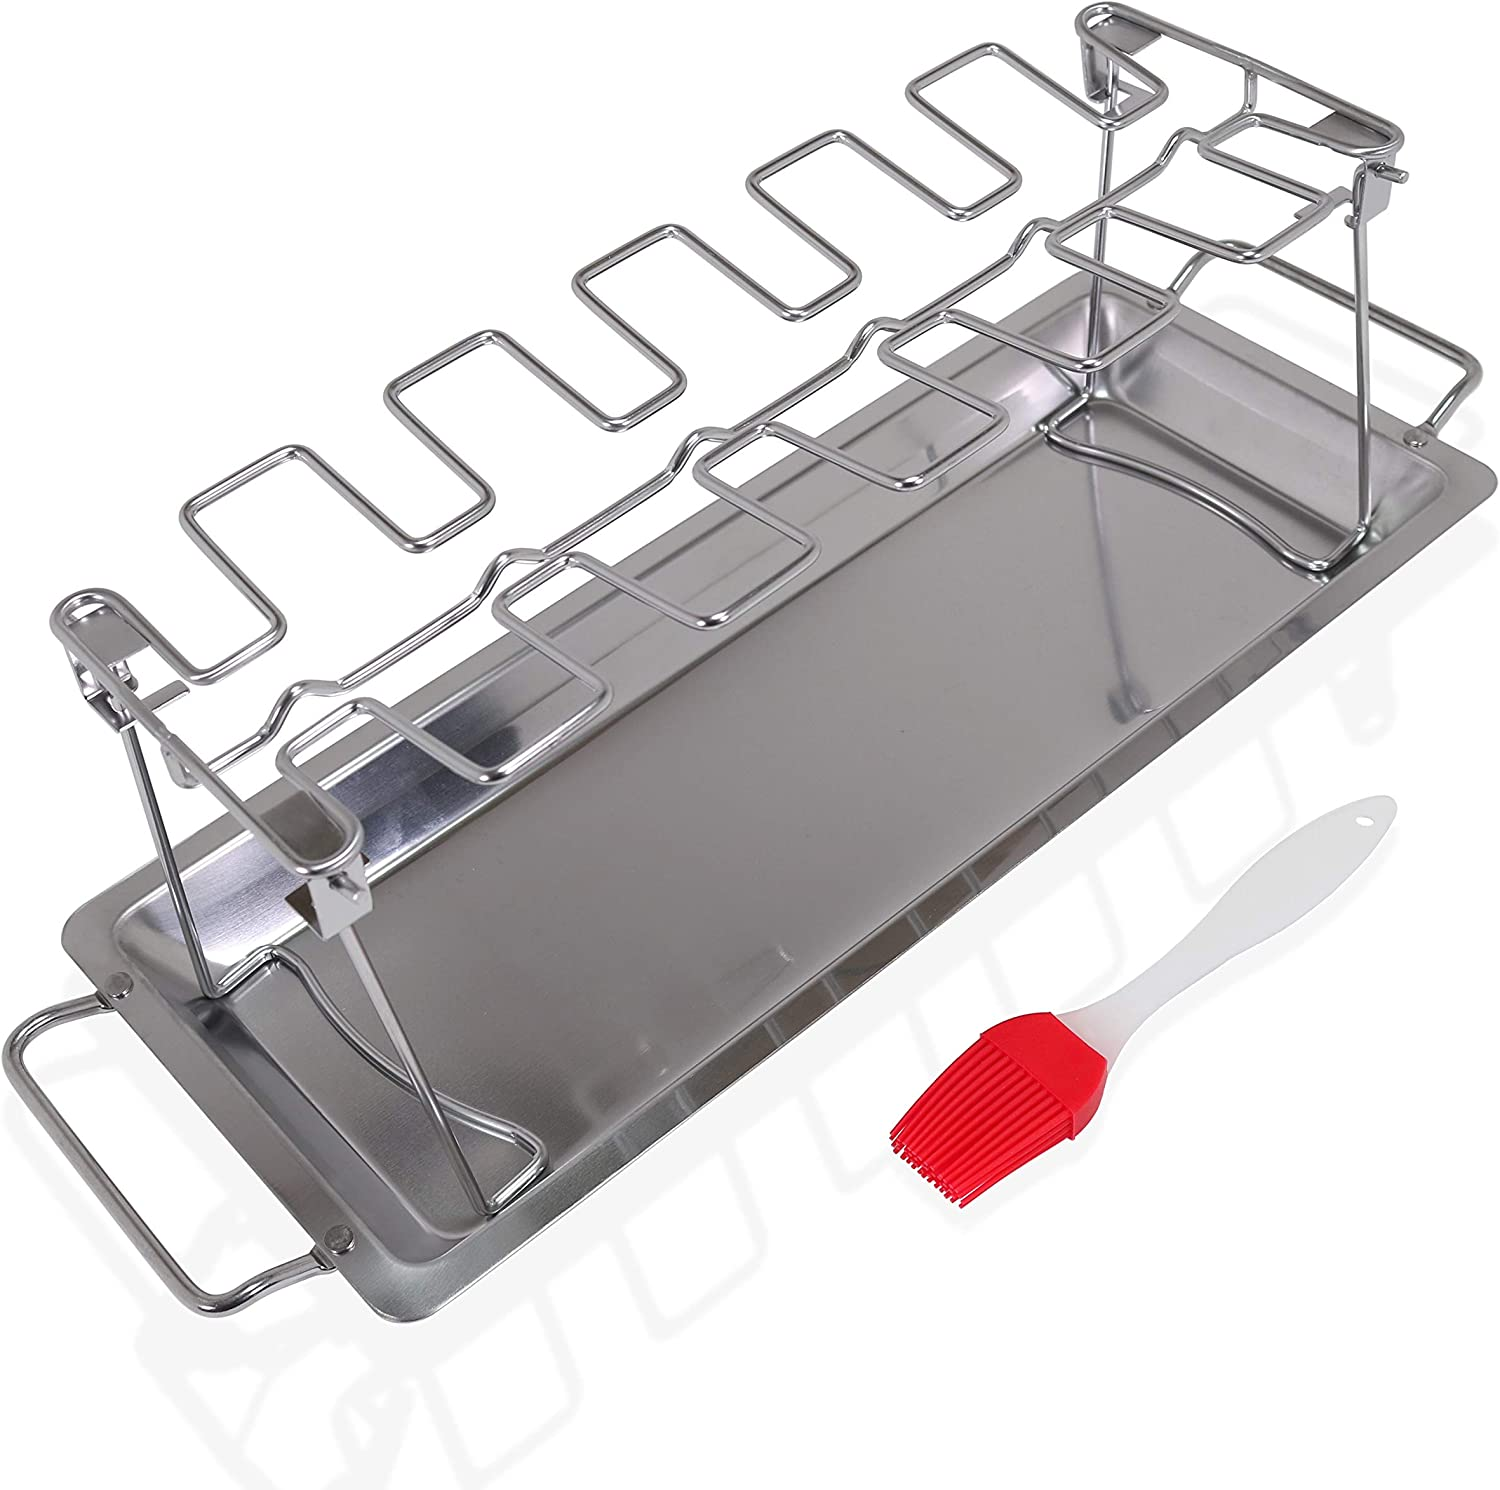 Sandtix Chicken Wing and Leg Rack 12 Slot Stainless Steel Roaster Rack with Drip Tray for Grilling Vegetables on The BBQ, Complete with a Silicone Basting Brush